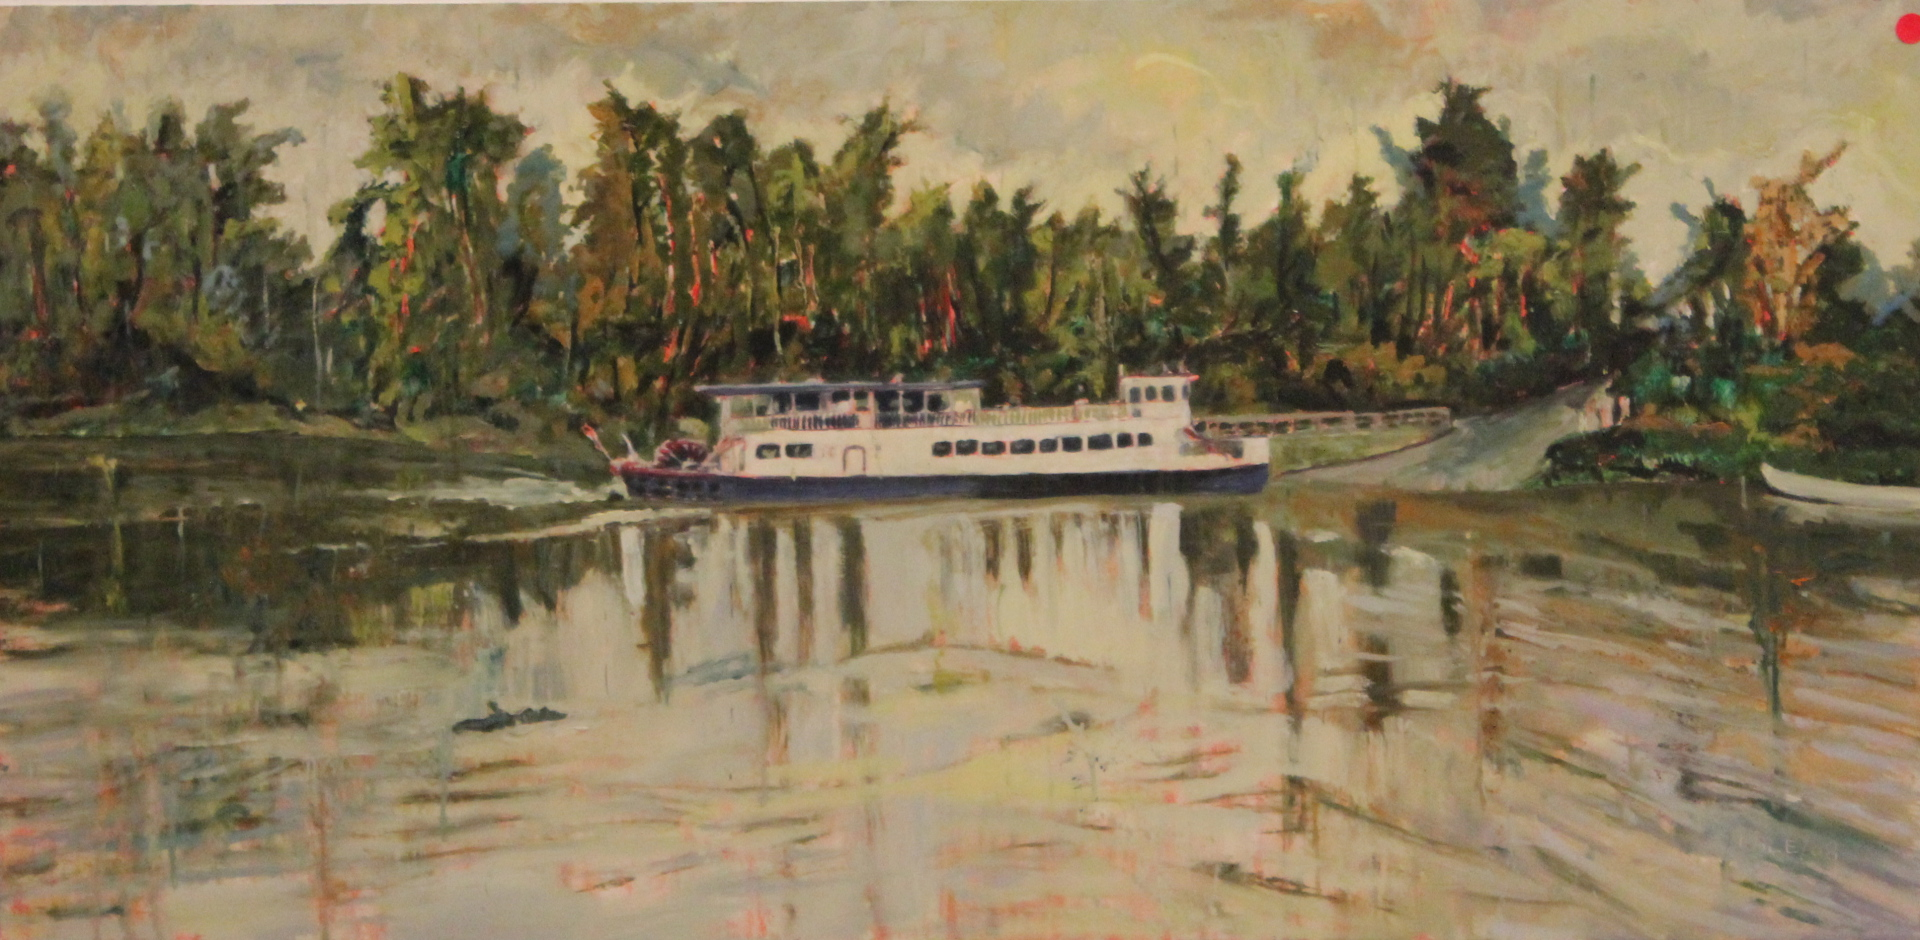 STEAM BOAT ON LAKE - 24X48 - OIL ON CANVAS - 2009